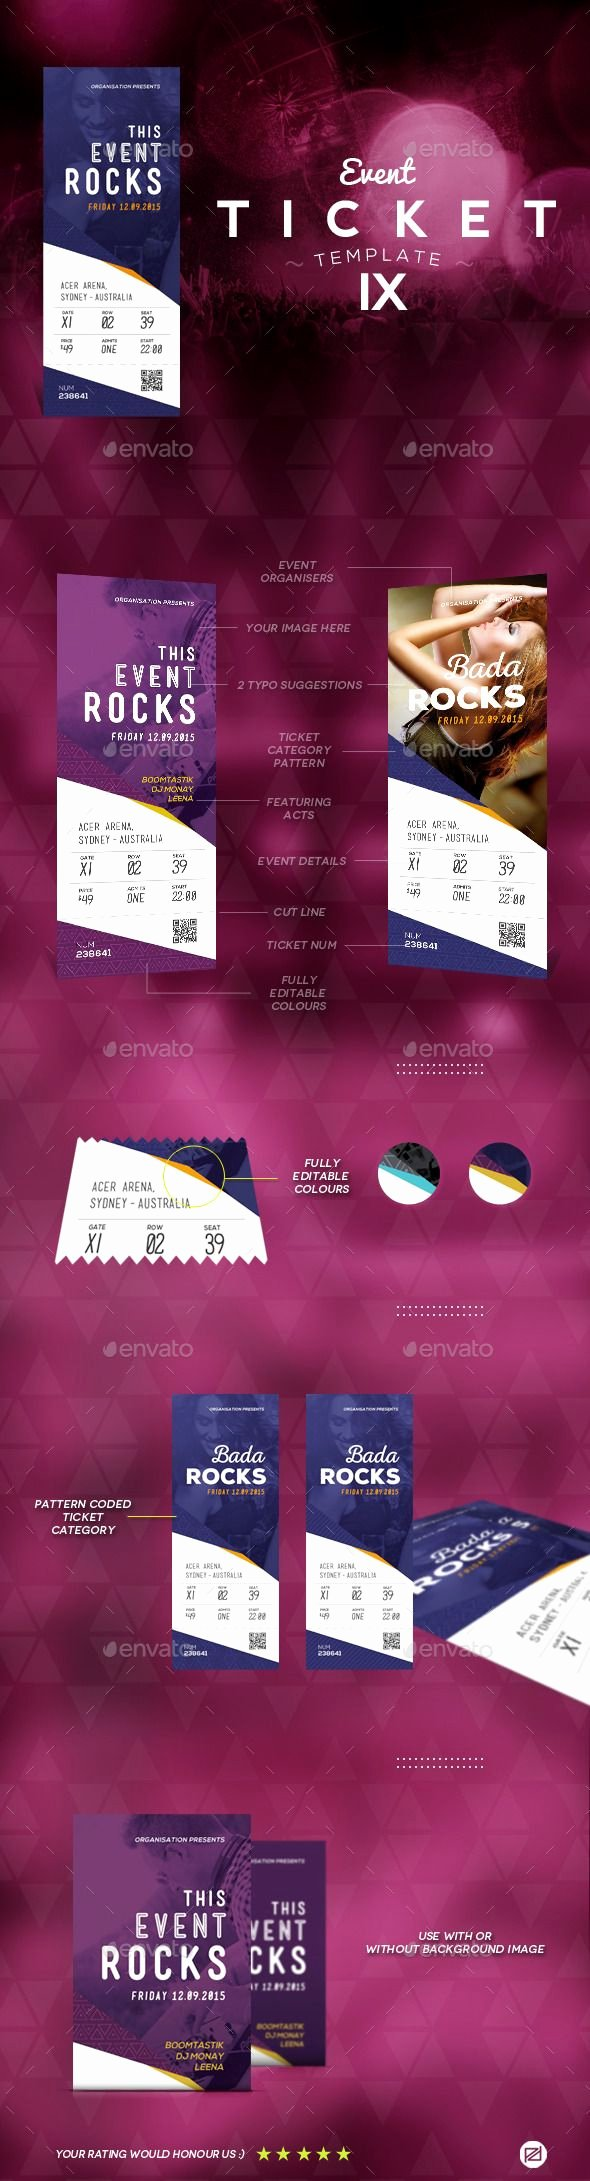 Concert Ticket Template Psd Lovely 25 Best Ideas About event Ticket Template On Pinterest